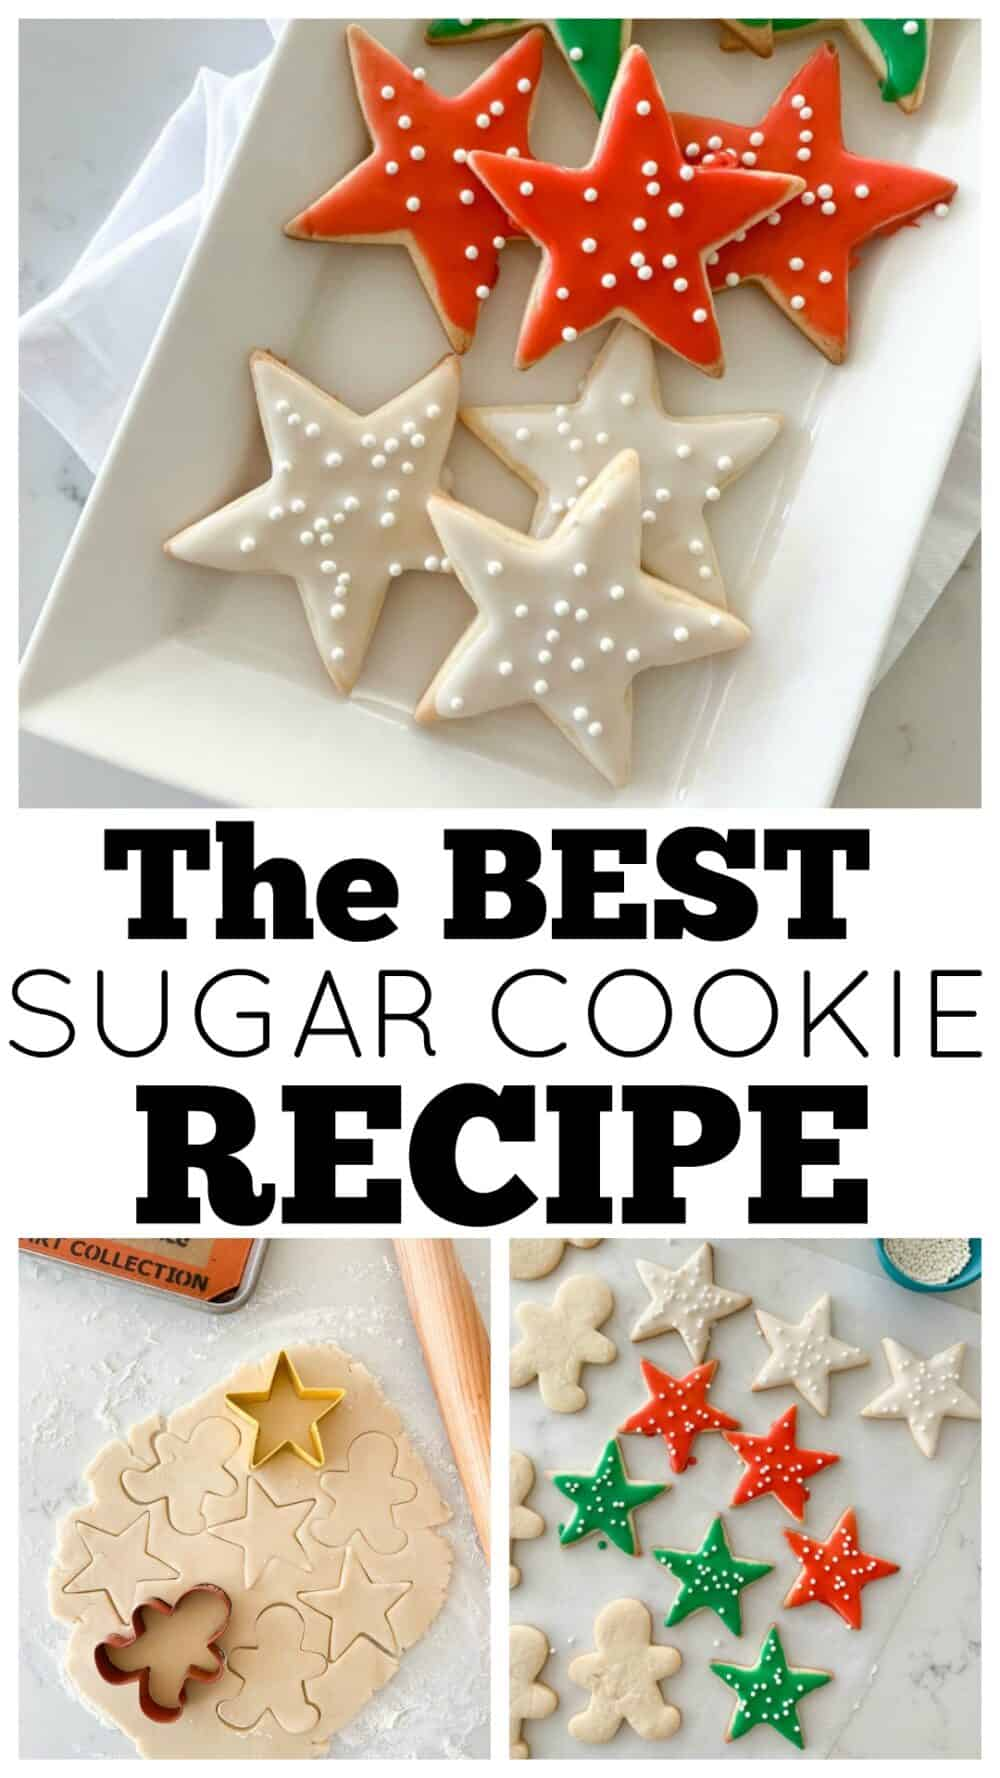 photo collage of sugar cookie recipe